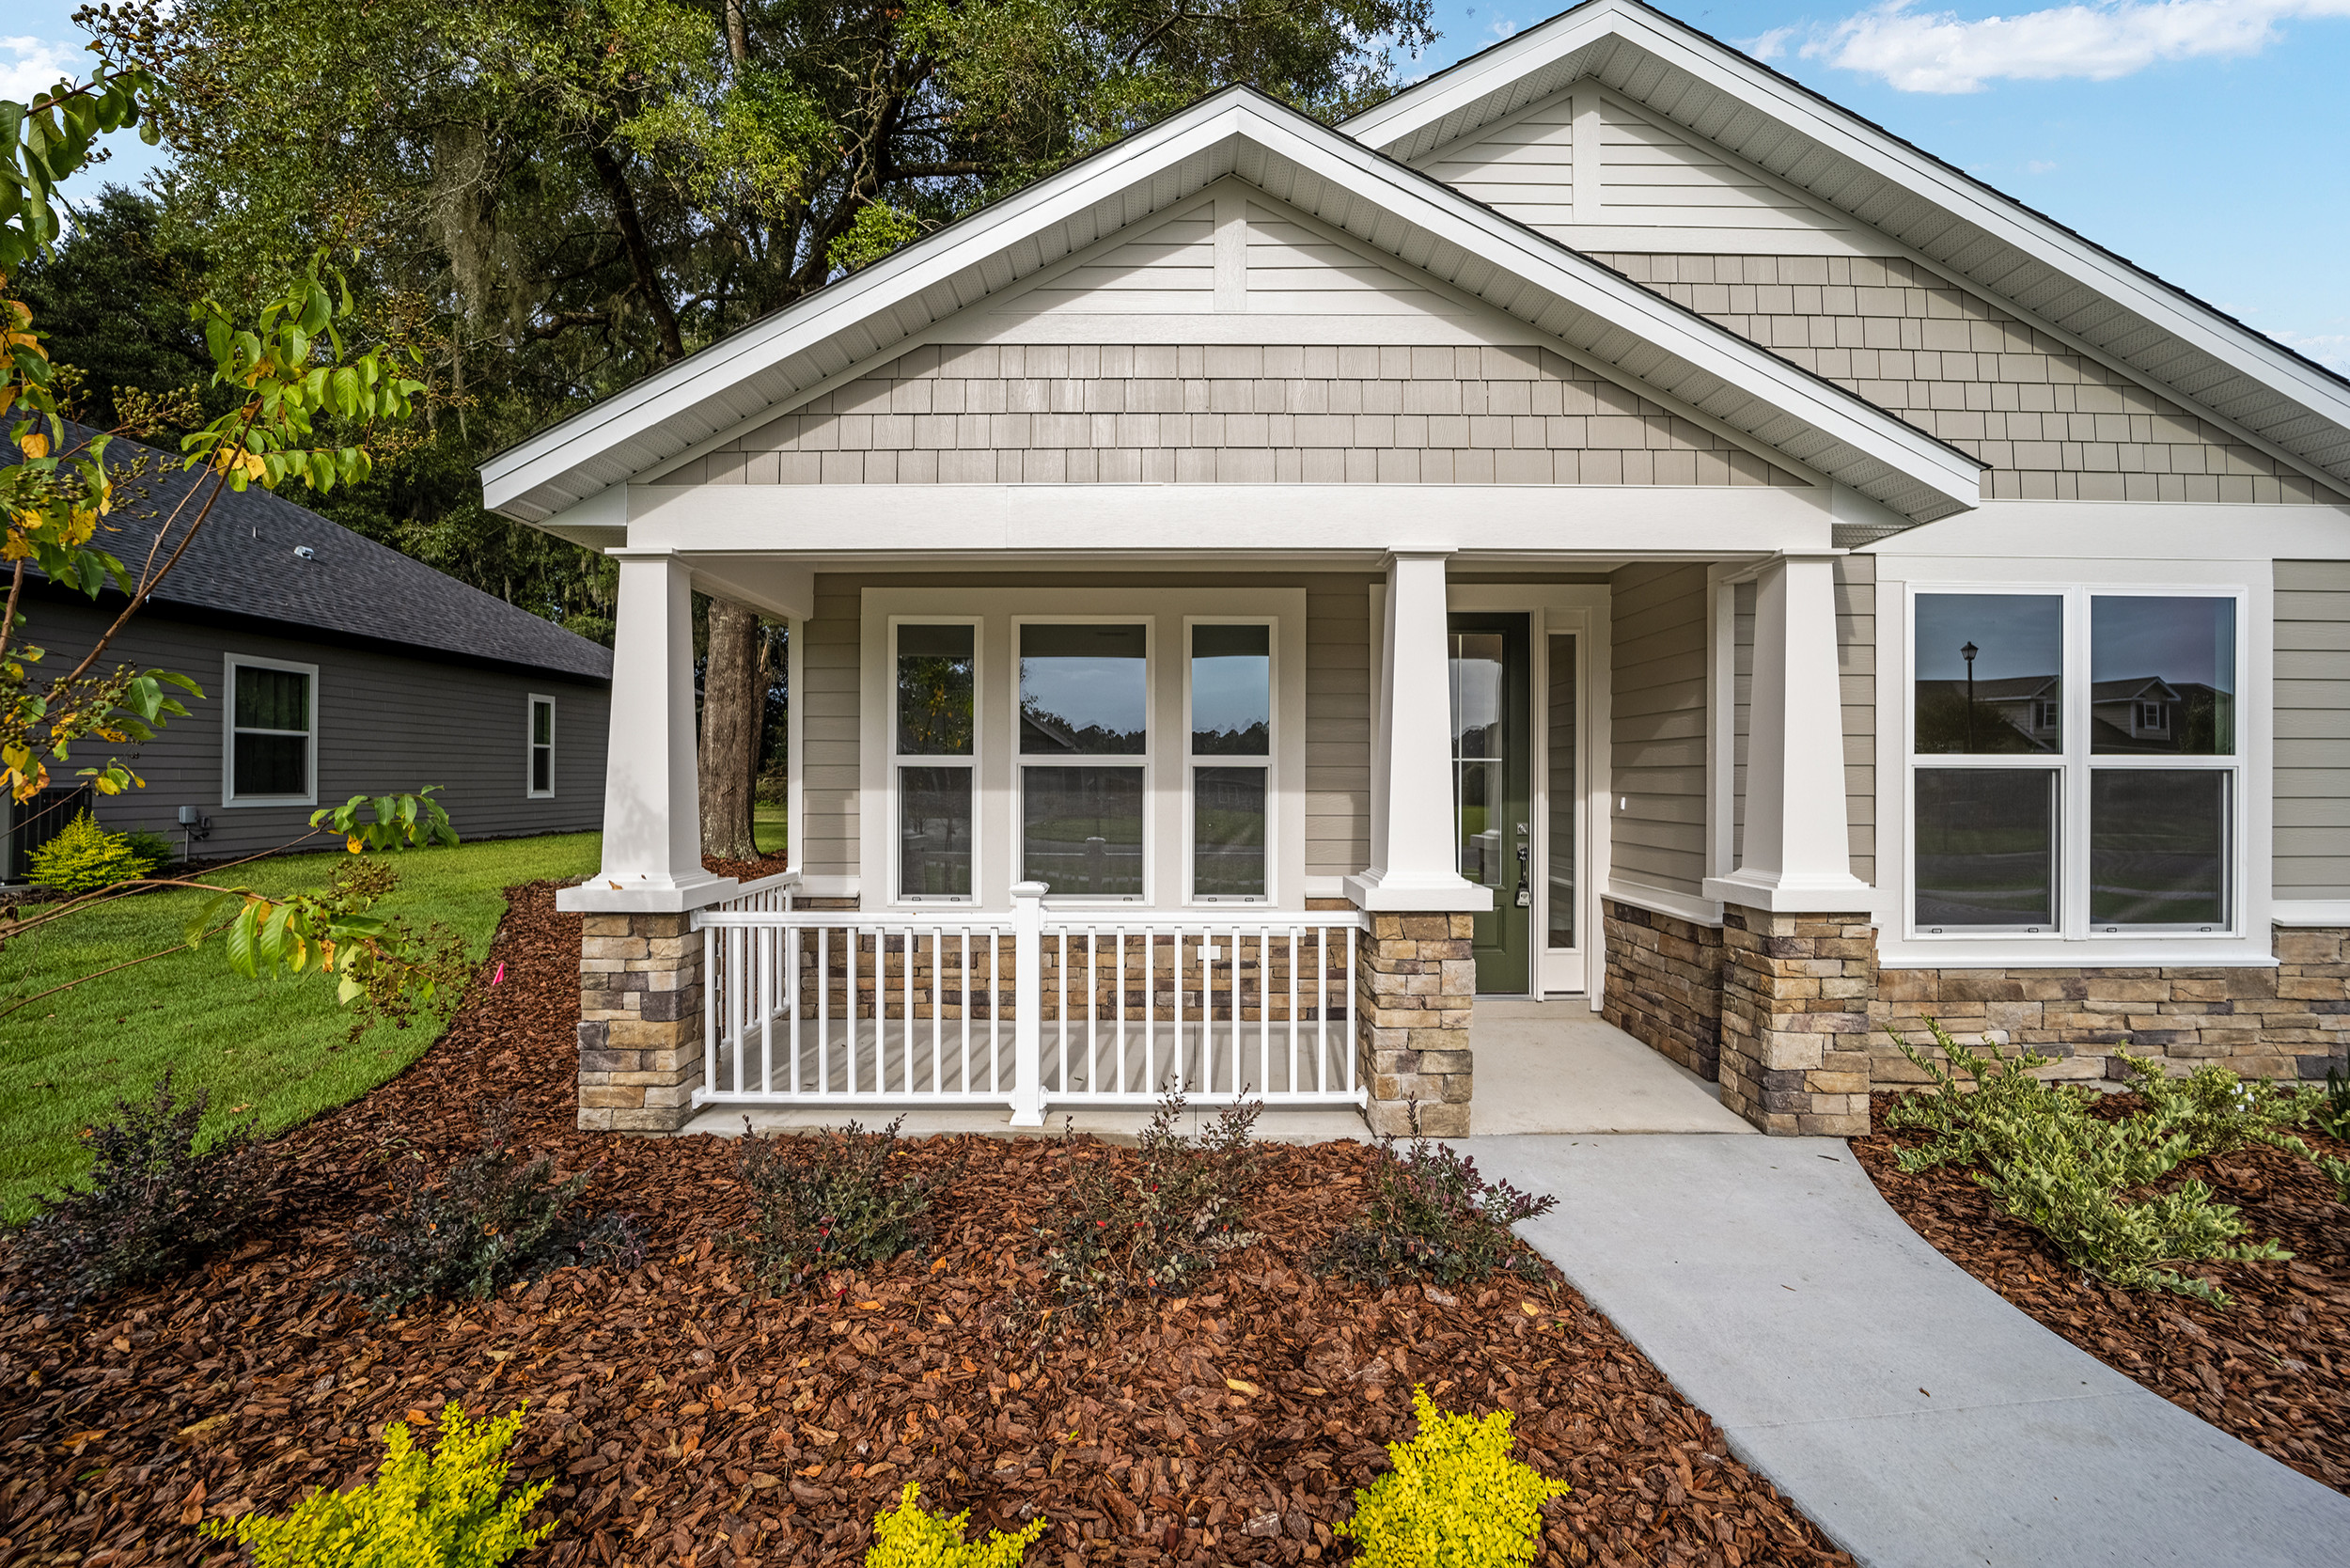 New Home - The Weston Model - 2,052